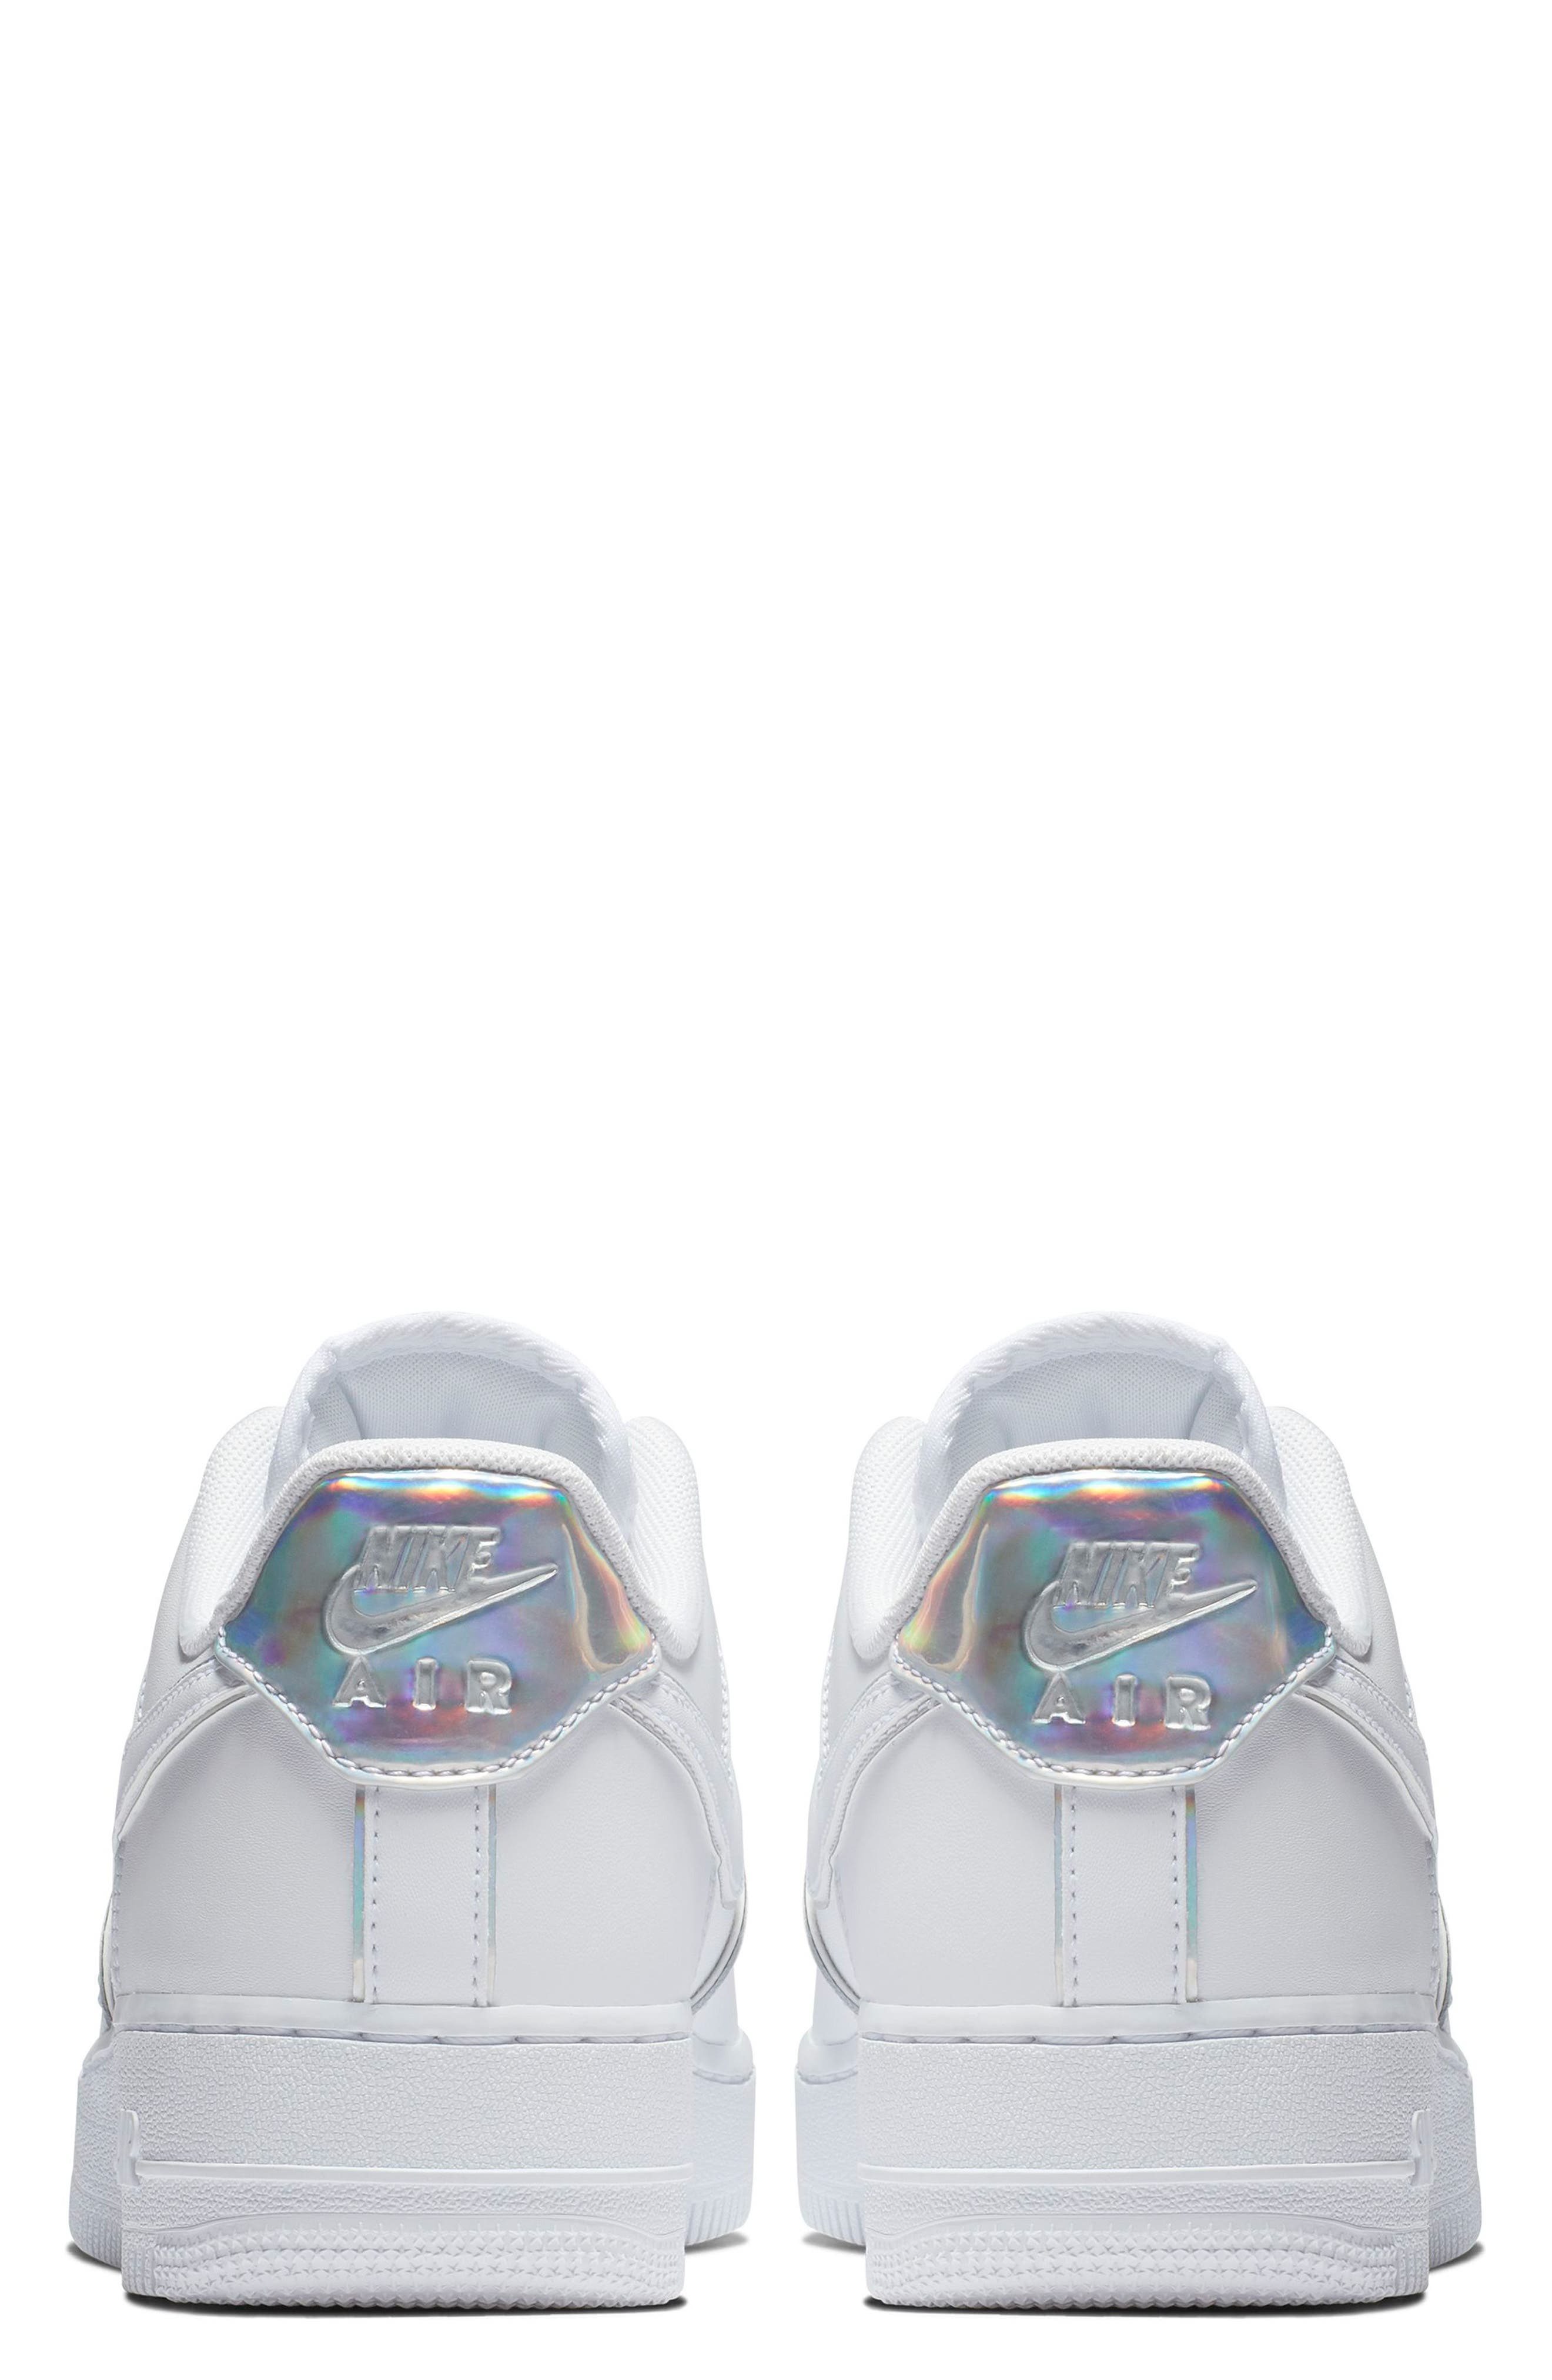 Air Force 1 '07 LV8 4 Sneaker,                             Alternate thumbnail 2, color,                             WHITE/ WHITE/ WHITE